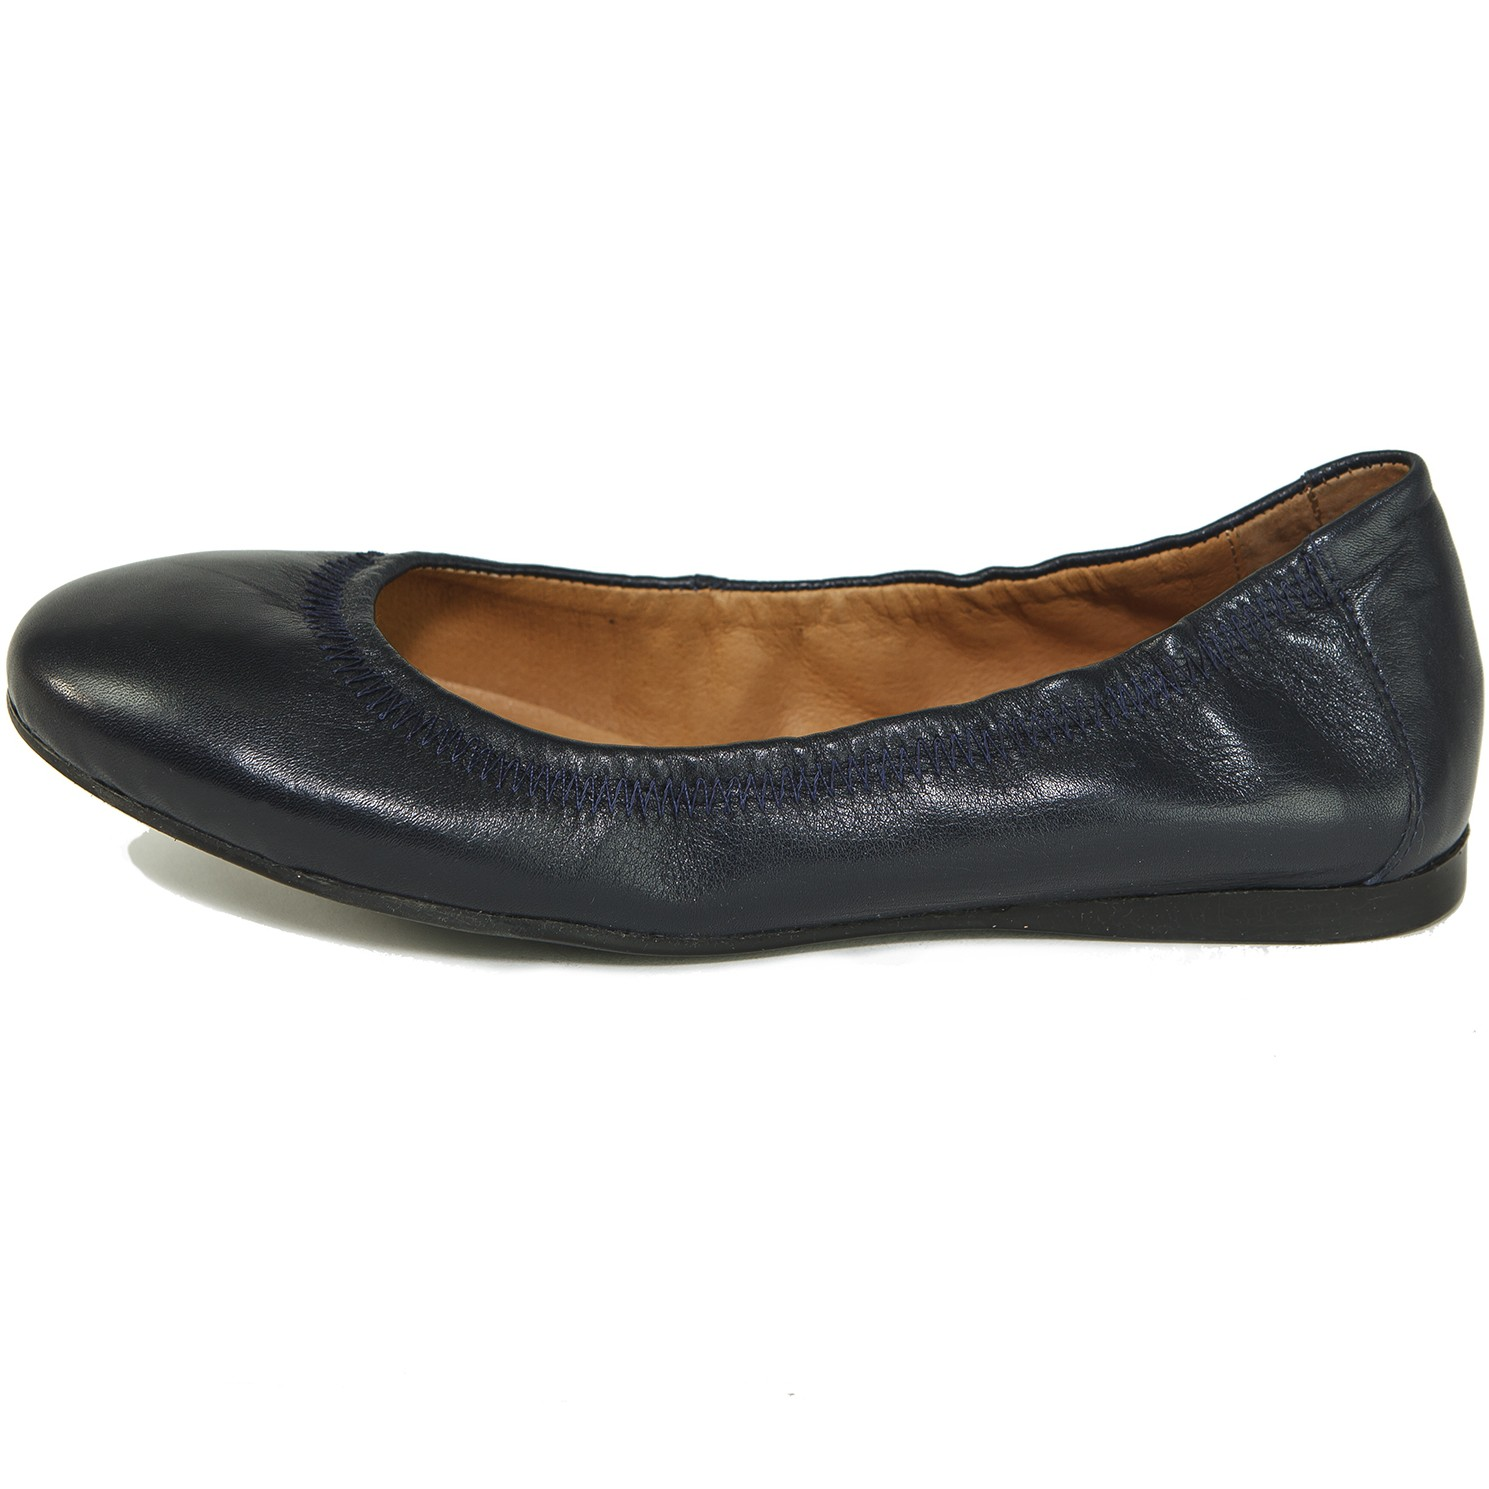 Excellent Alpine Swiss Womenu0026#39;s Vera Ballet Flats European Made Shoes Leather Inside U0026 Out | EBay